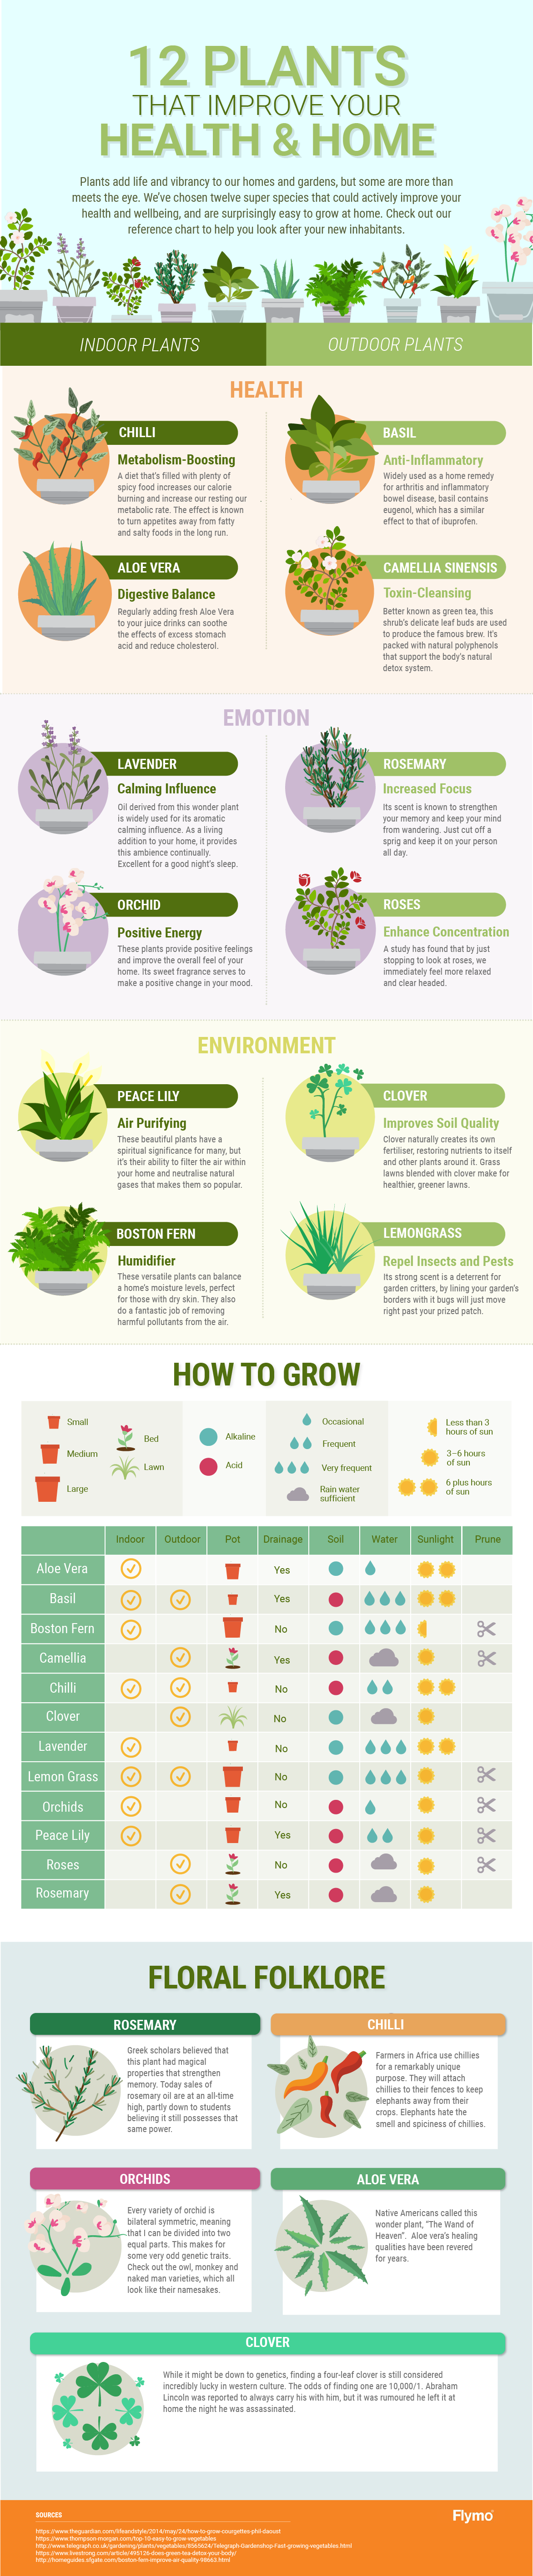 12 plants that improve your health and home